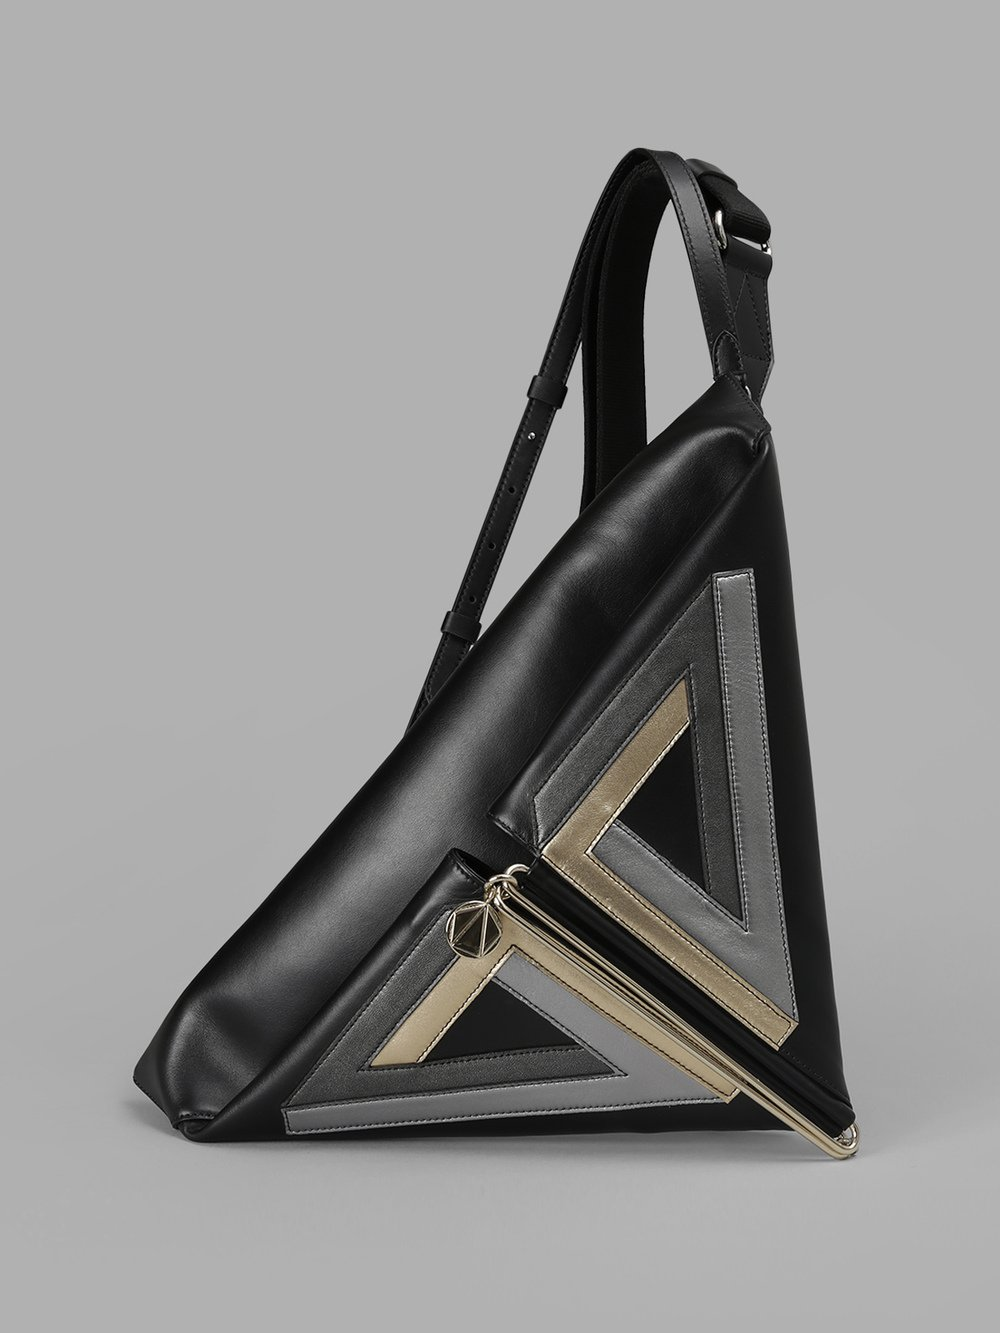 SIMONE RAINER BLACK TRIANGLE BAG WITH METAL DETAILS